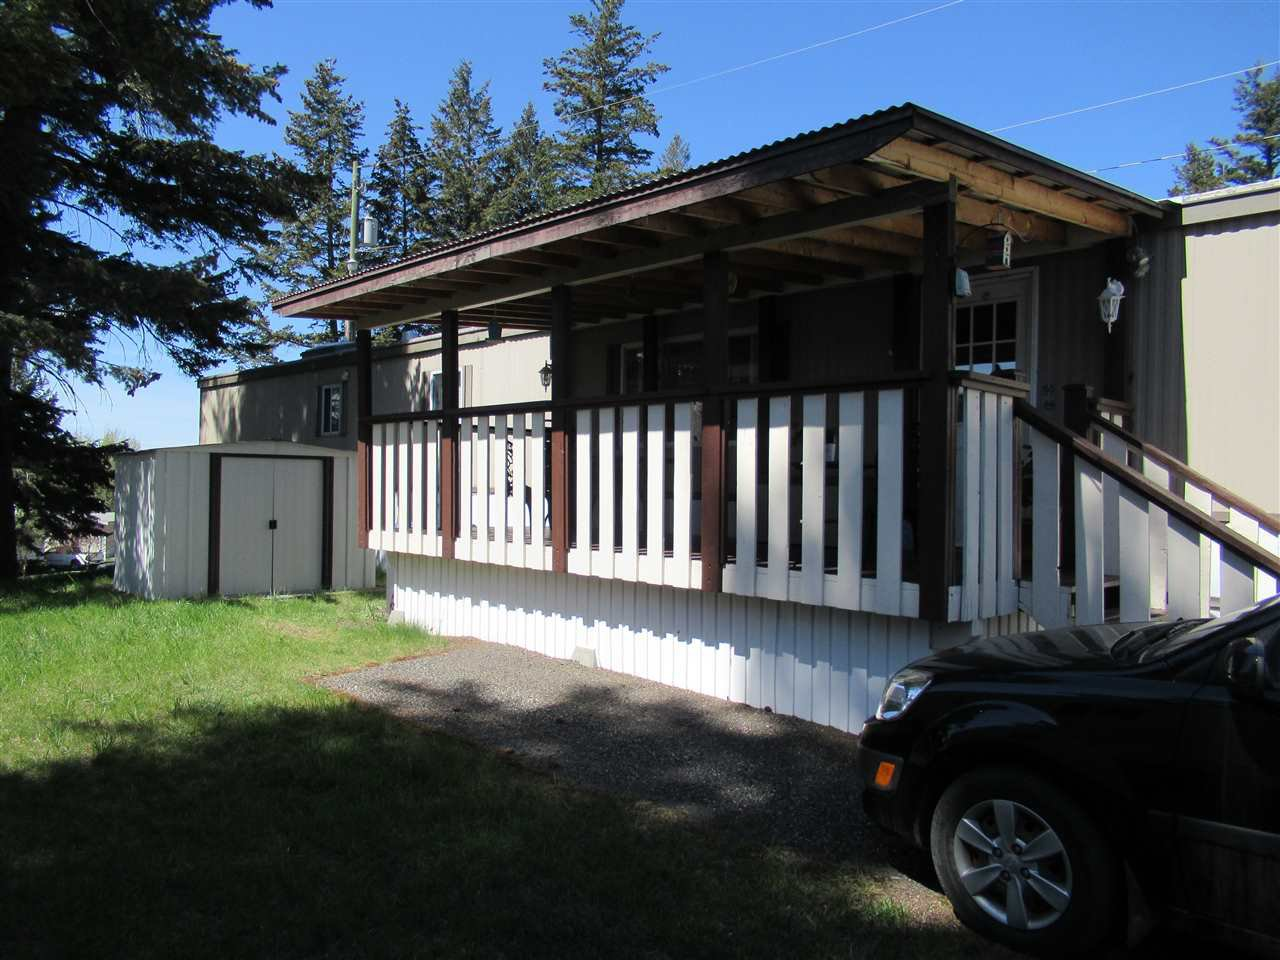 Photo 17: Photos: 75 770 11TH Avenue in Williams Lake: Williams Lake - City Manufactured Home for sale (Williams Lake (Zone 27))  : MLS®# R2368538